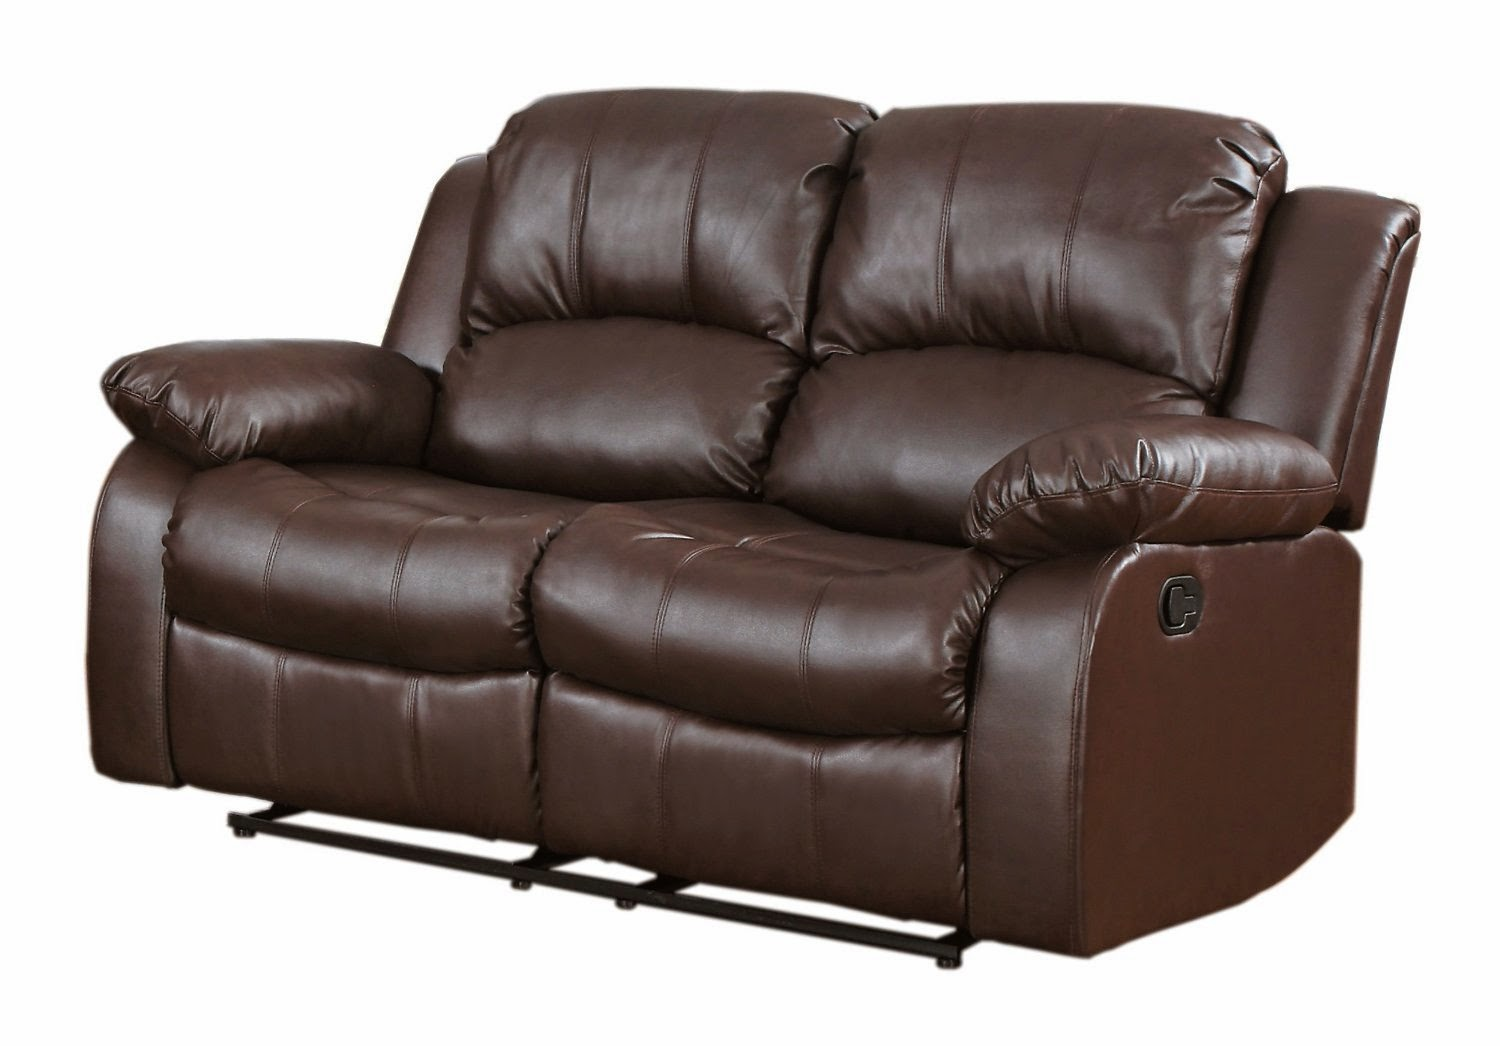 The best reclining sofa reviews reclining leather couches for sale Reclining loveseat sale